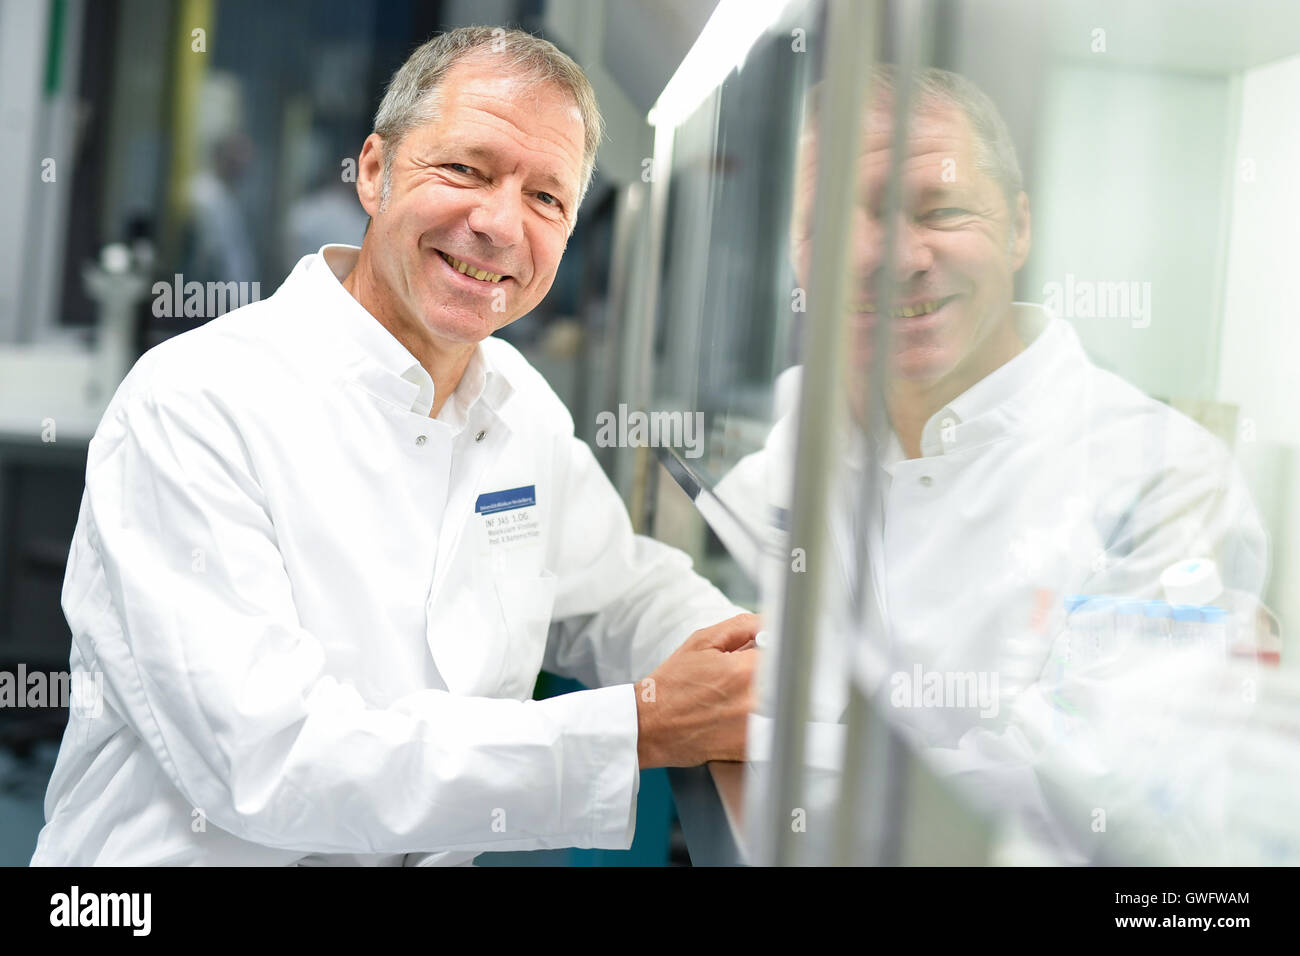 Heidelberg, Germany. 13th Sep, 2016. Virologist and cancer researcher Ralf Bartenschlager pictured in a laboratory - Stock Image